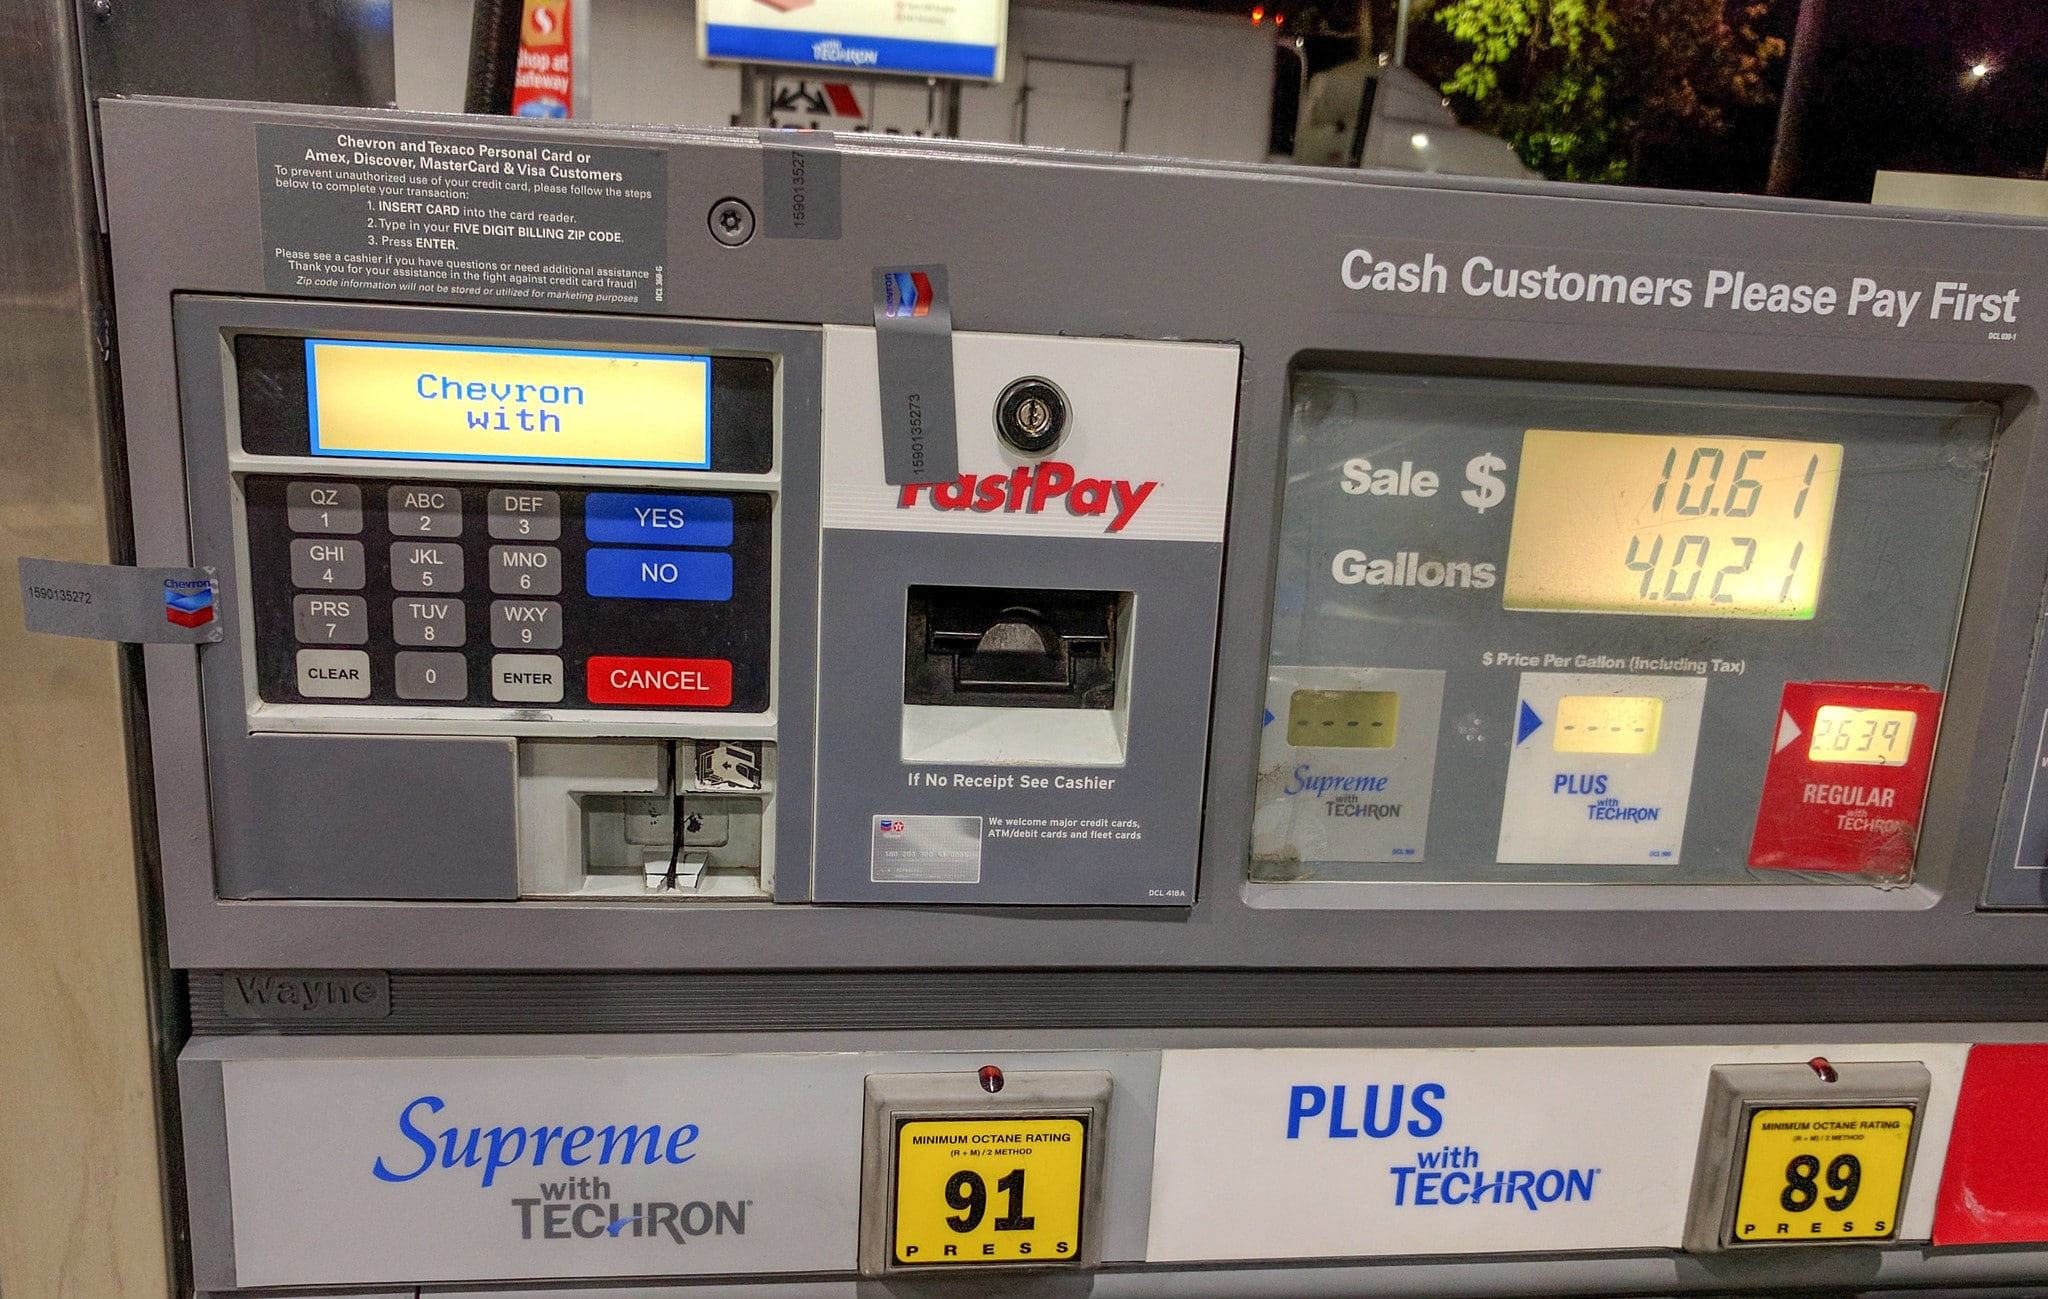 New Ways To Prevent Credit Card Skimming